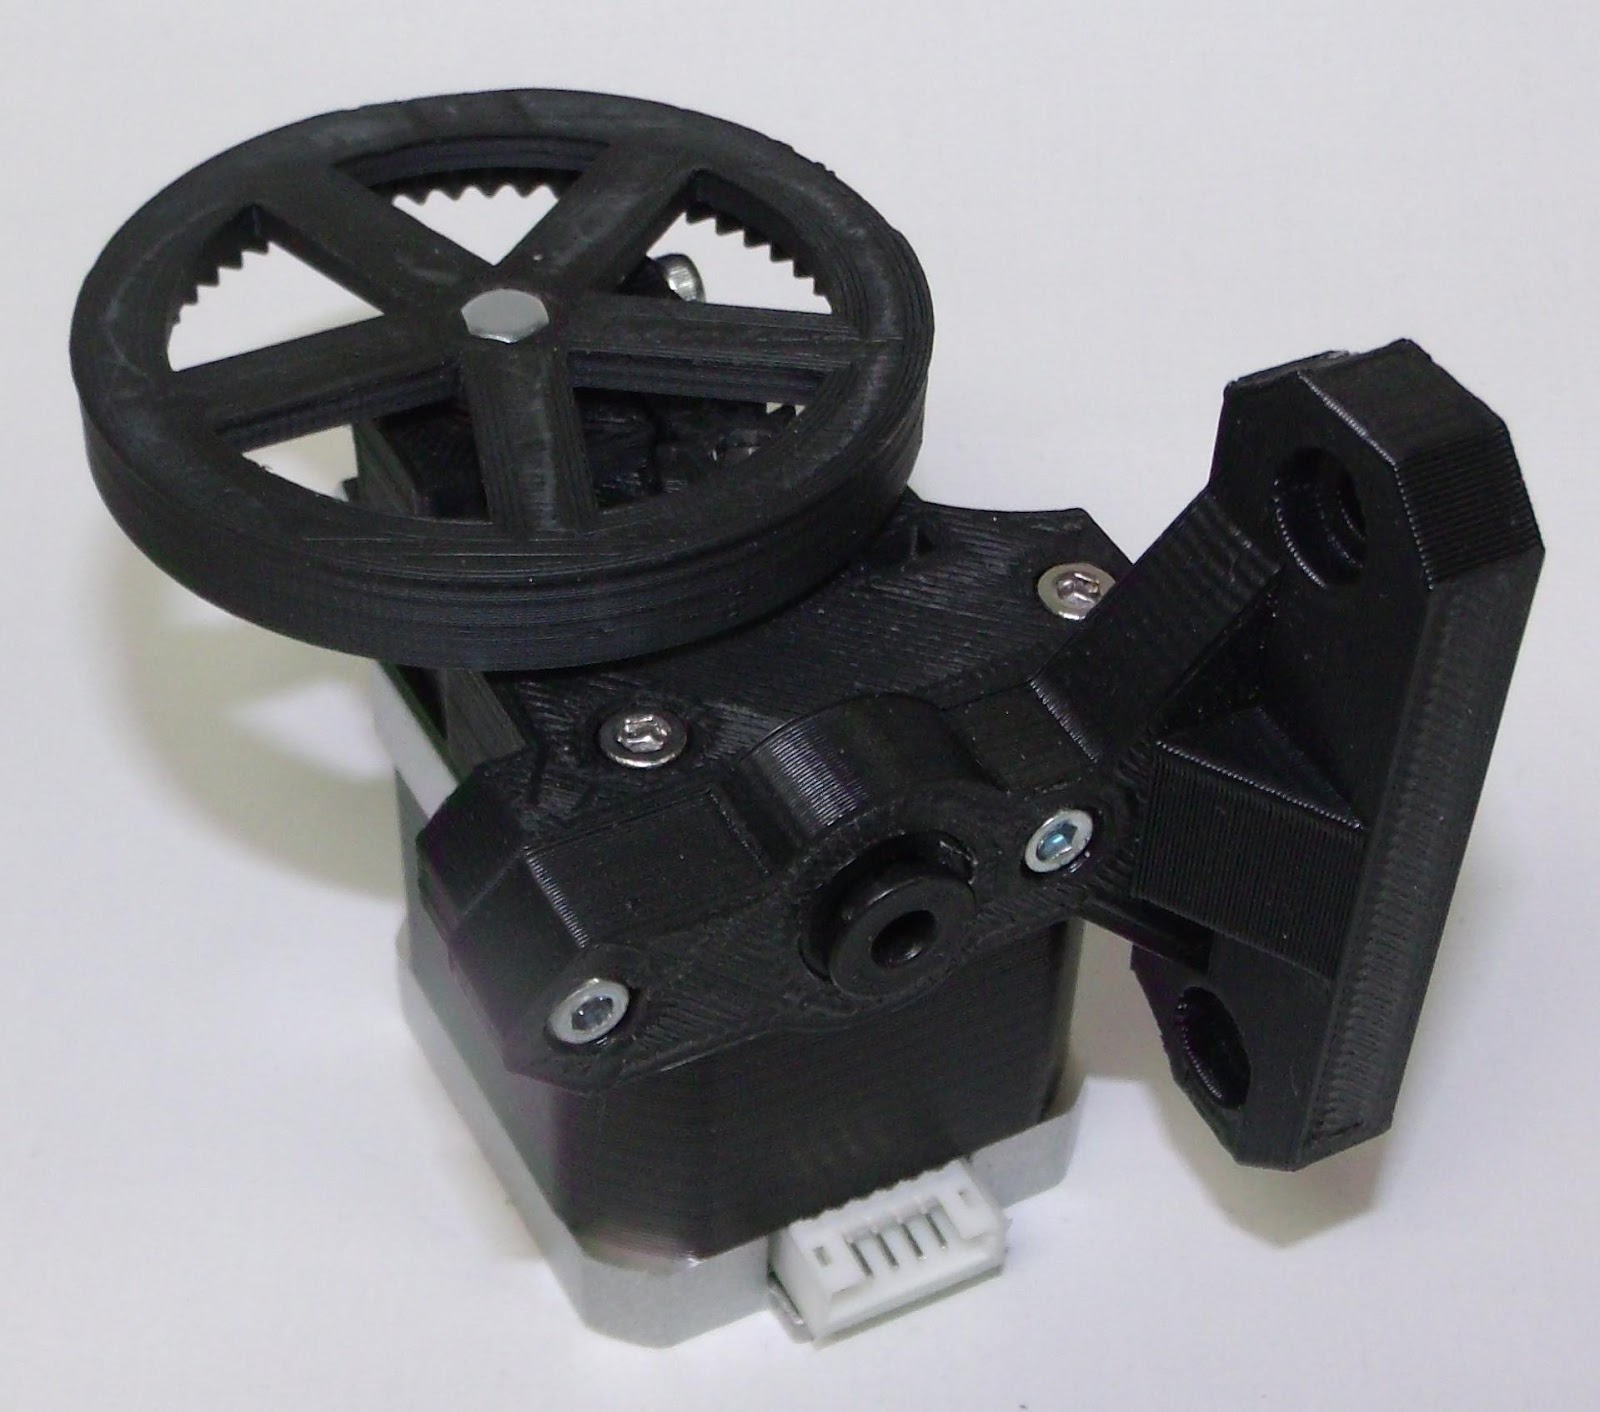 Extruder-new-mount-pushfit.JPG